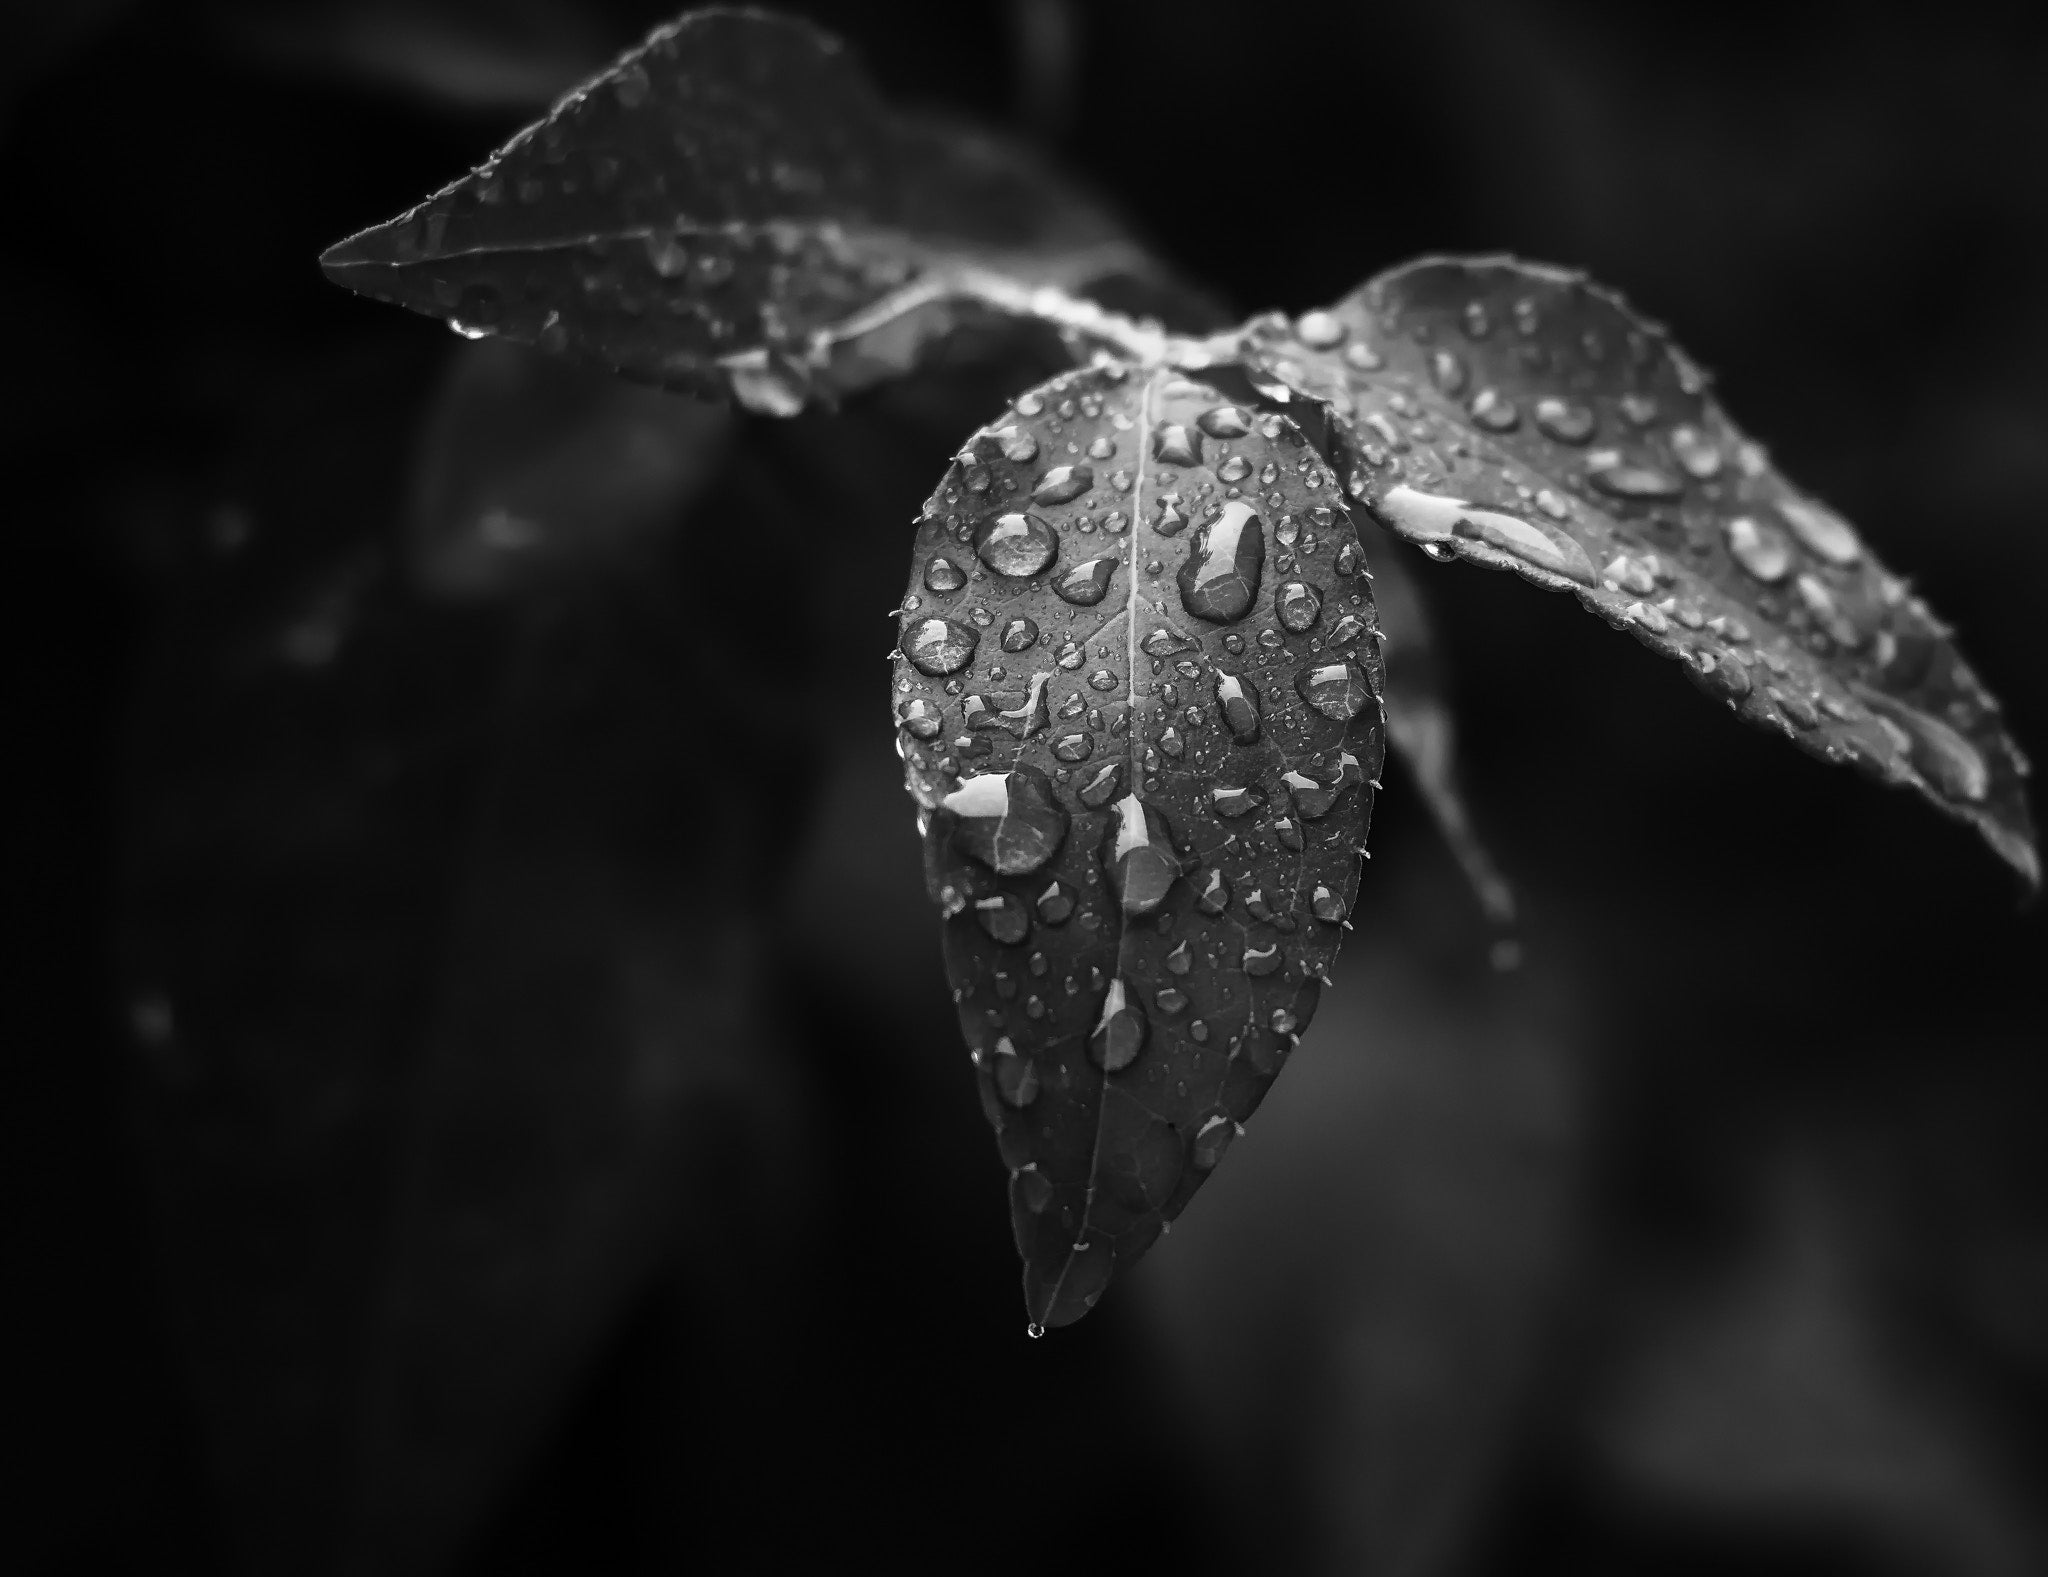 Black & white photo of water droplets on a leaf